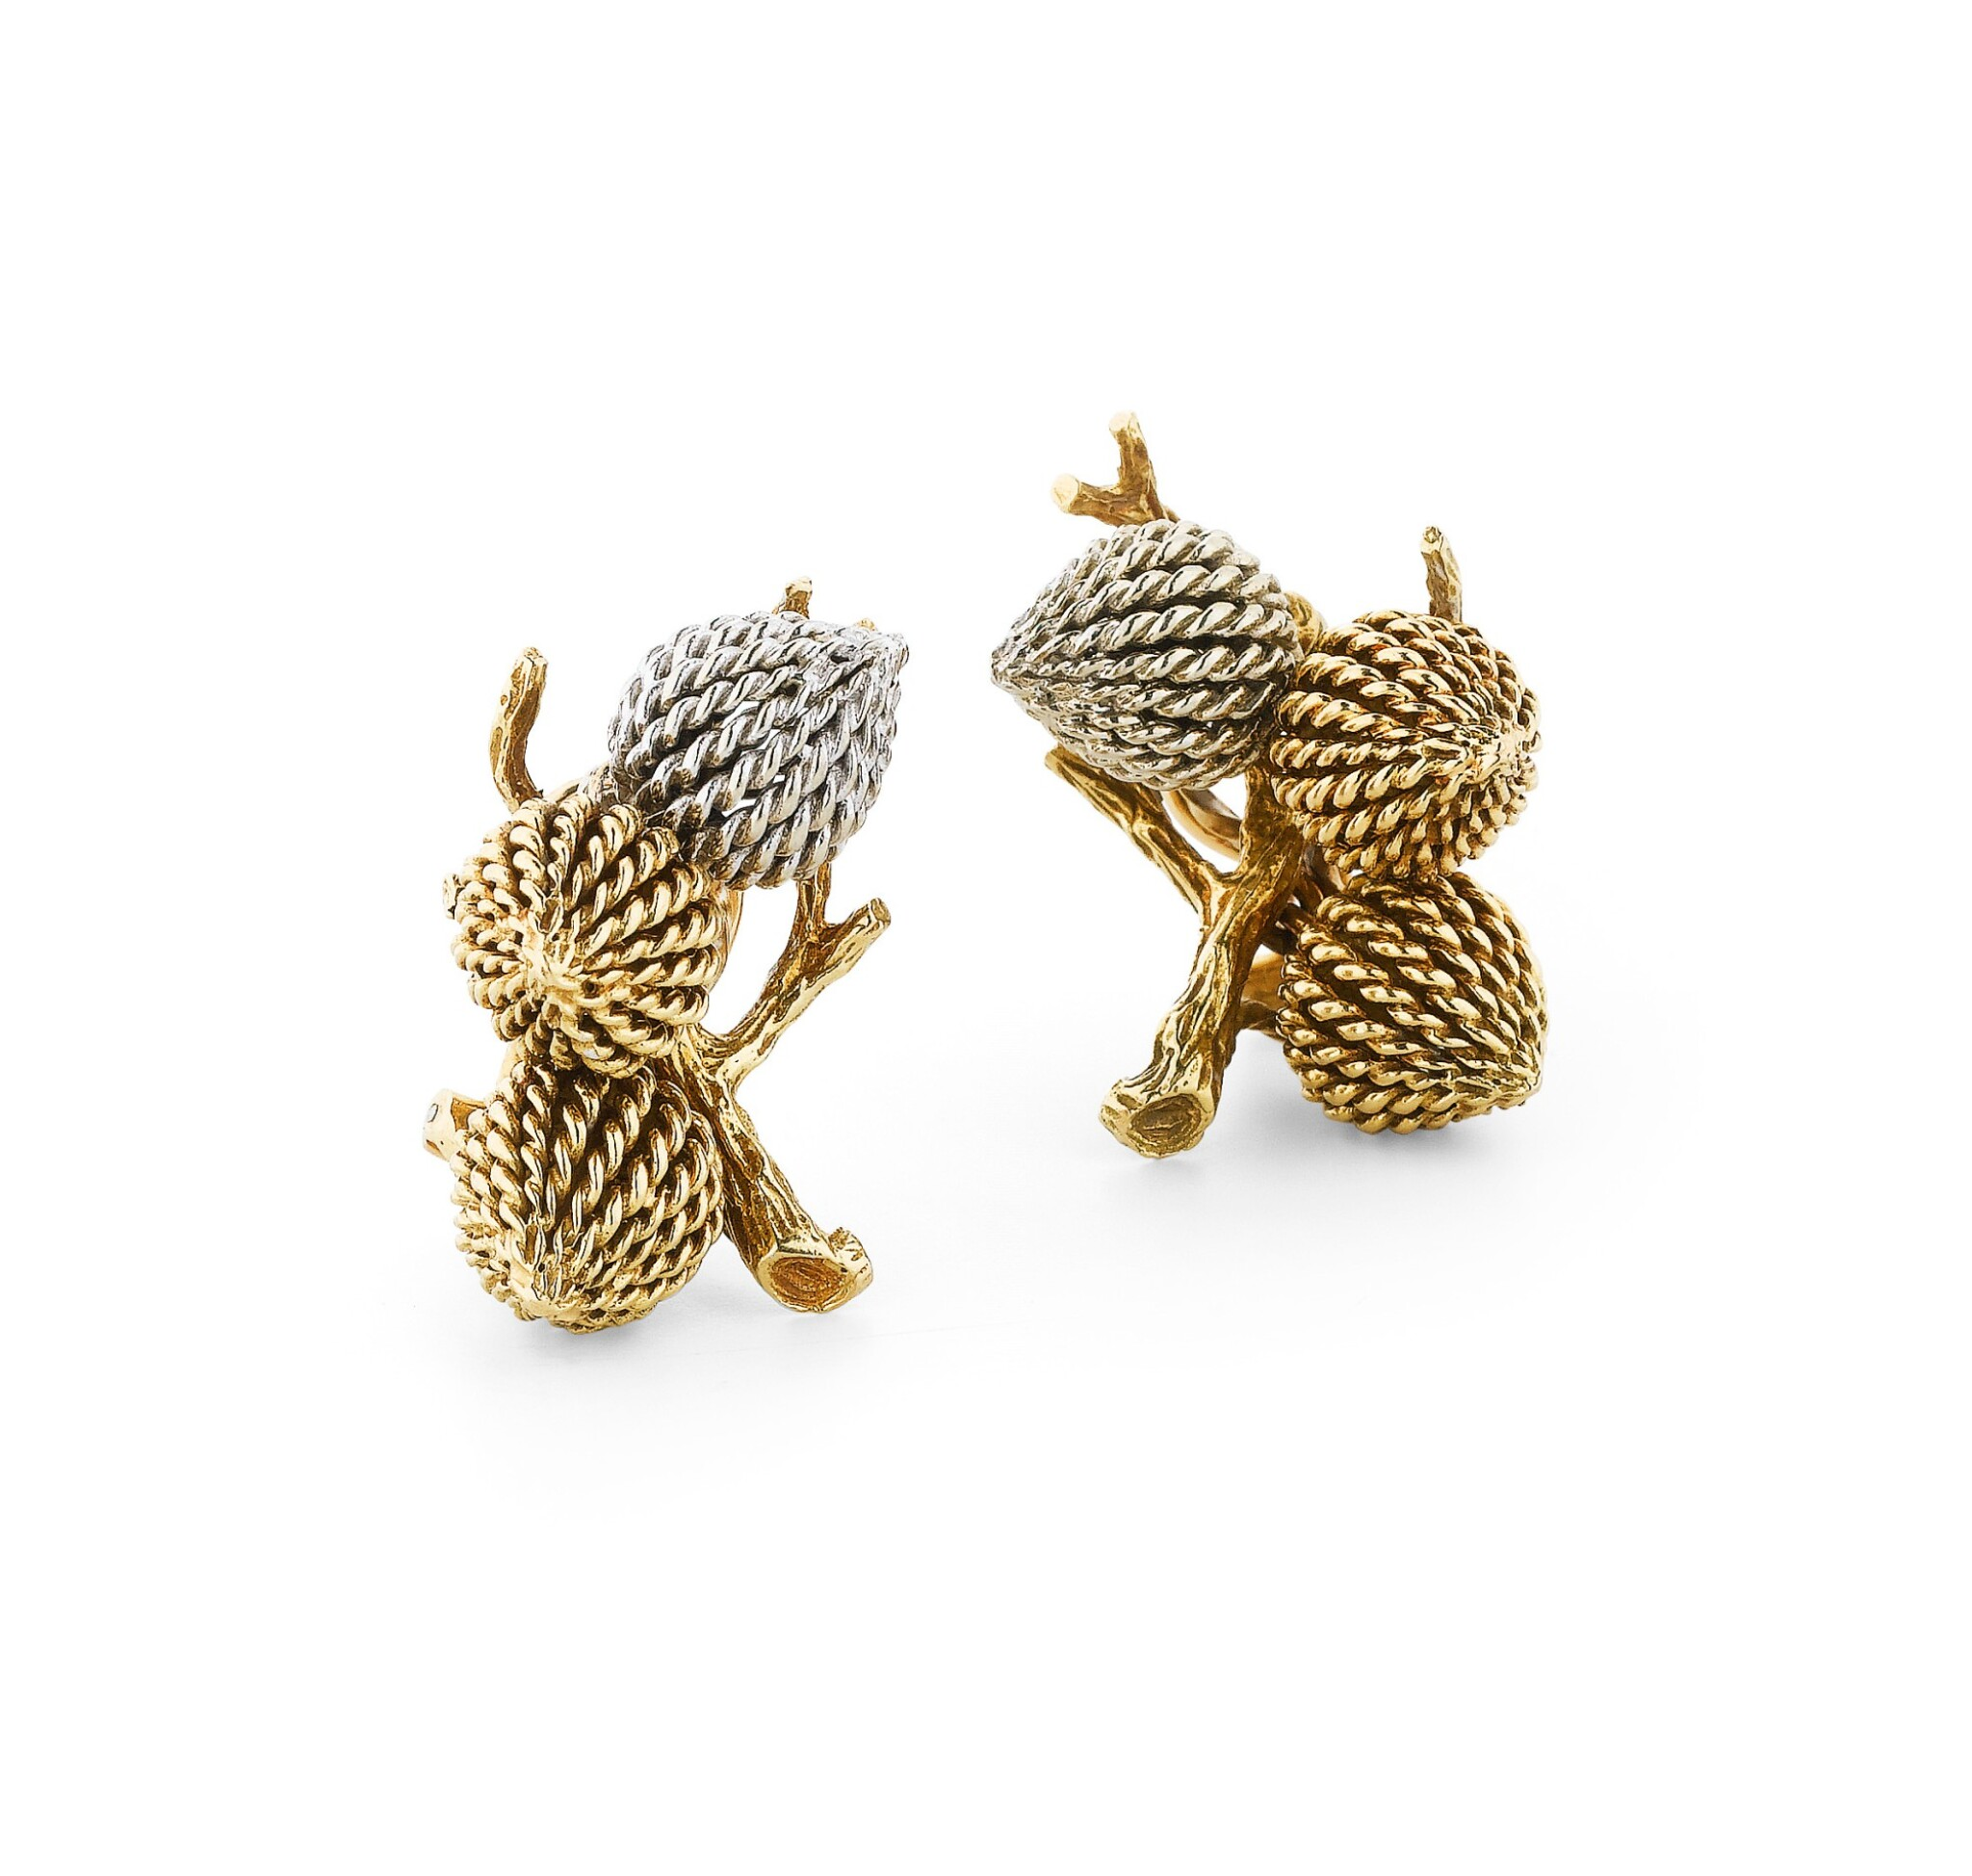 View full screen - View 1 of Lot 111. Paire de clips d'oreille or | Pair of gold ear clips.